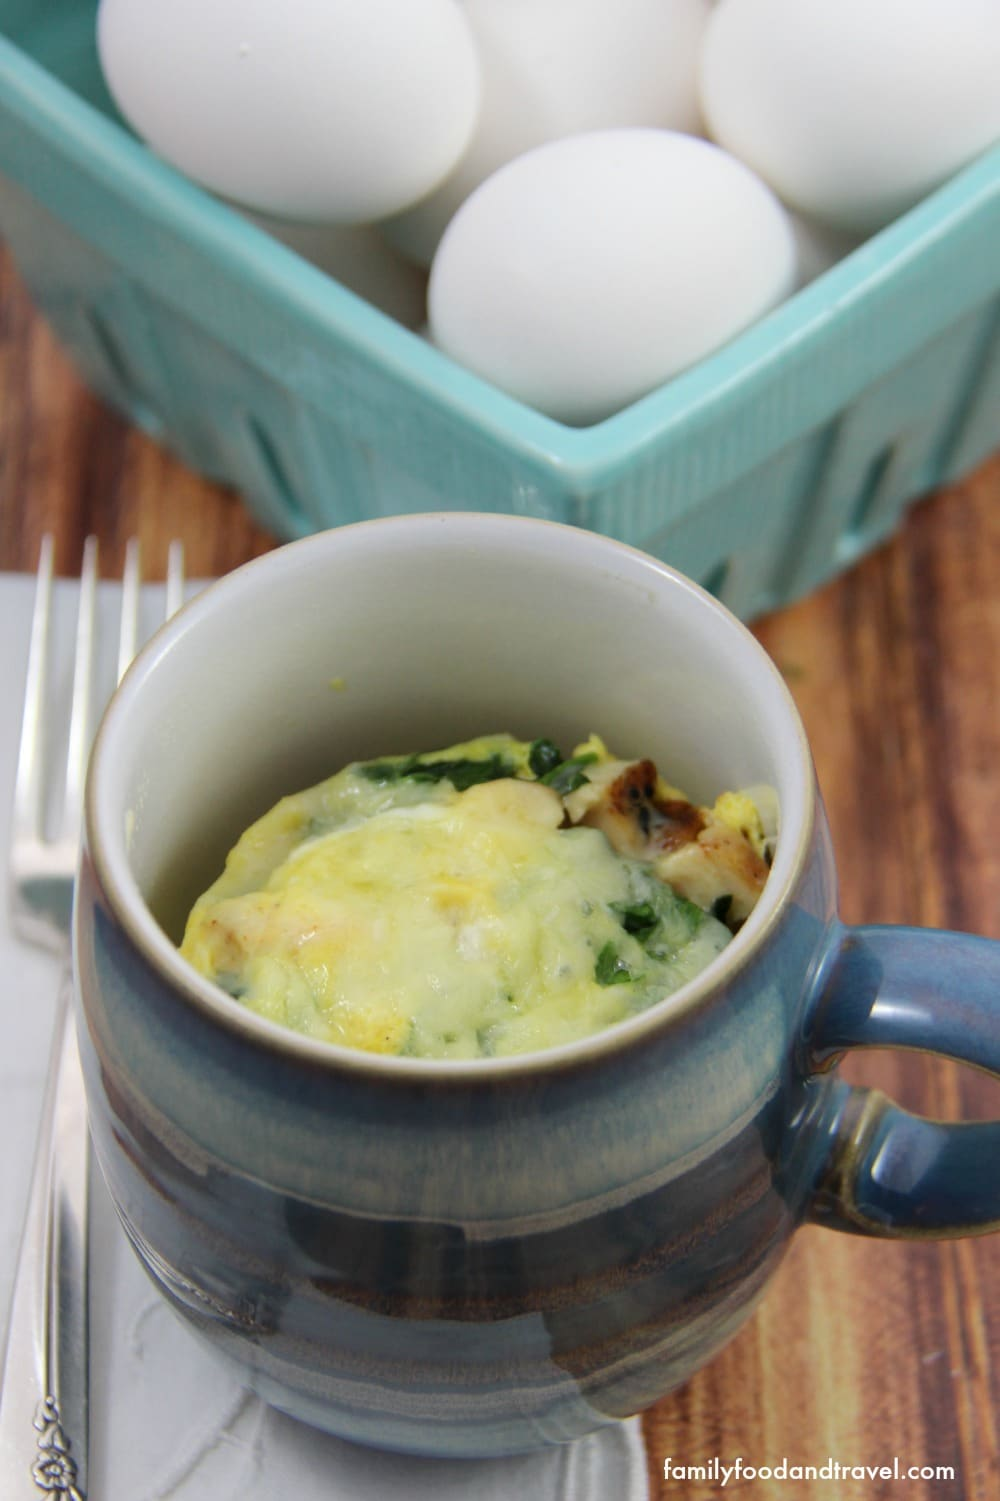 Chicken and Egg Breakfast Mug